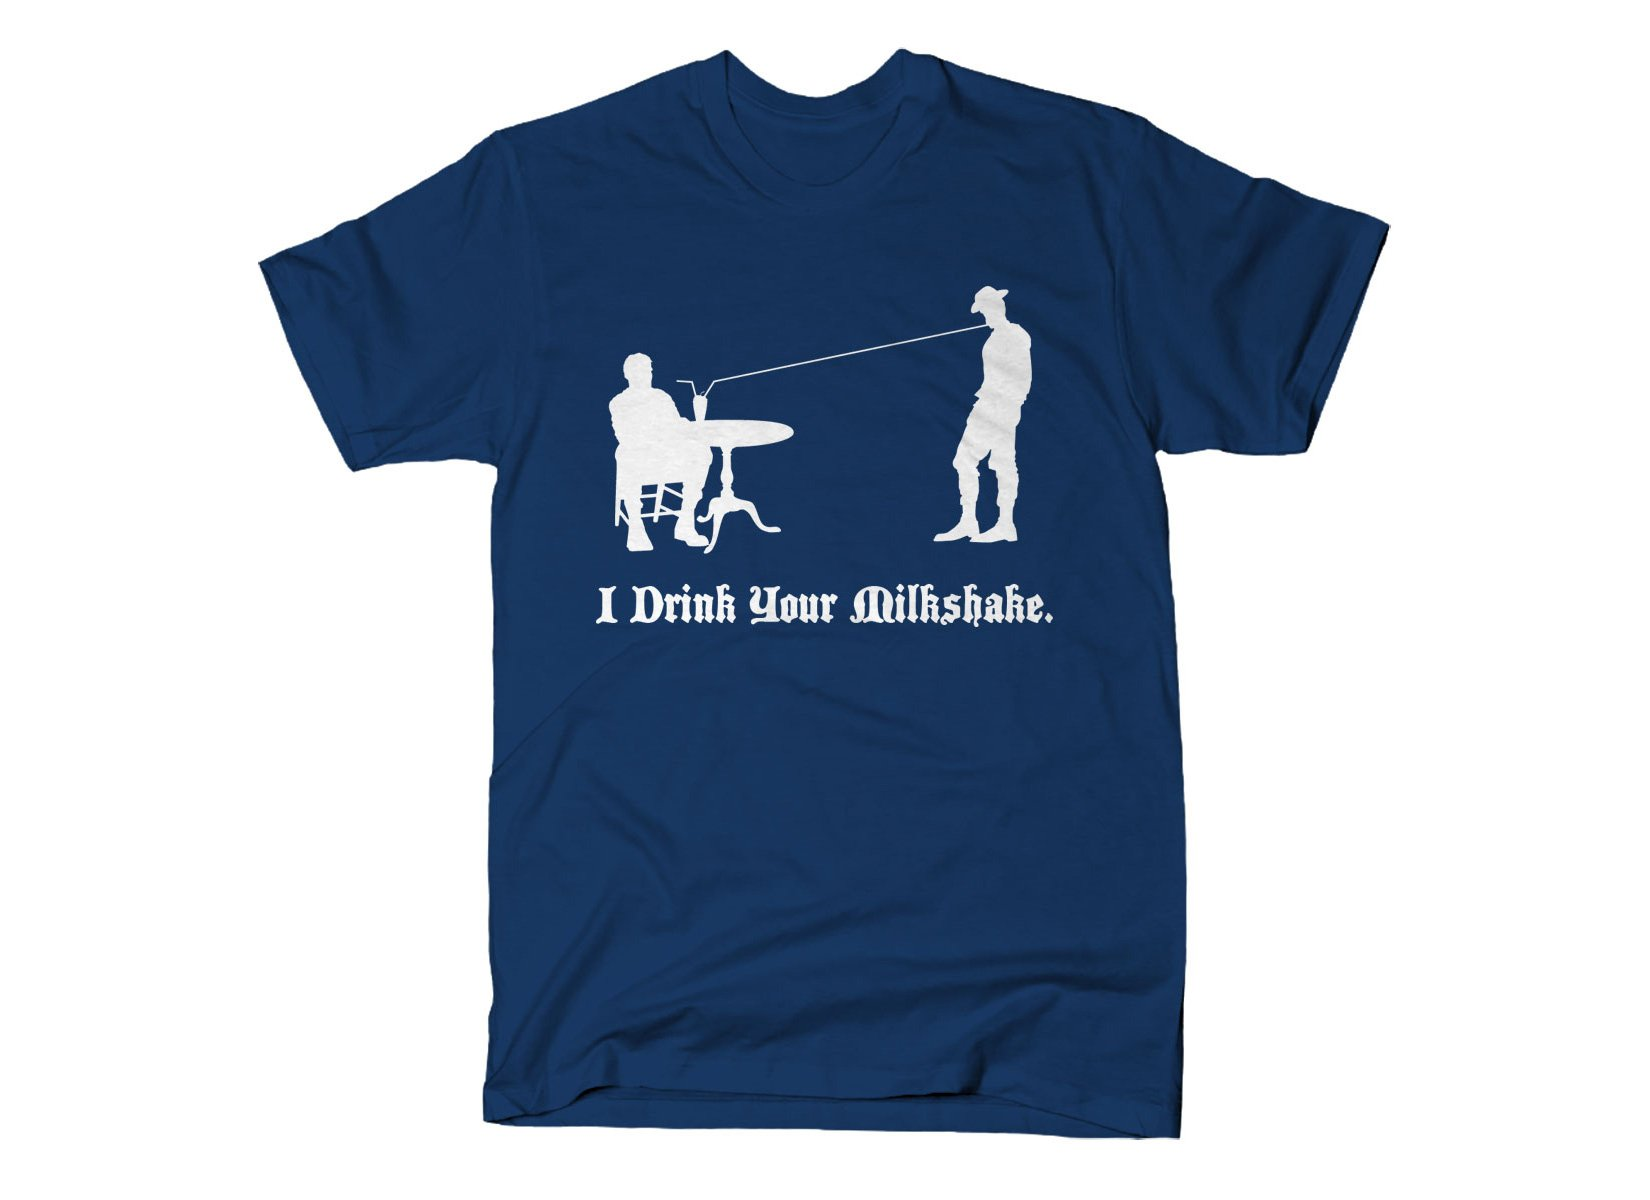 I Drink Your Milkshake on Mens T-Shirt